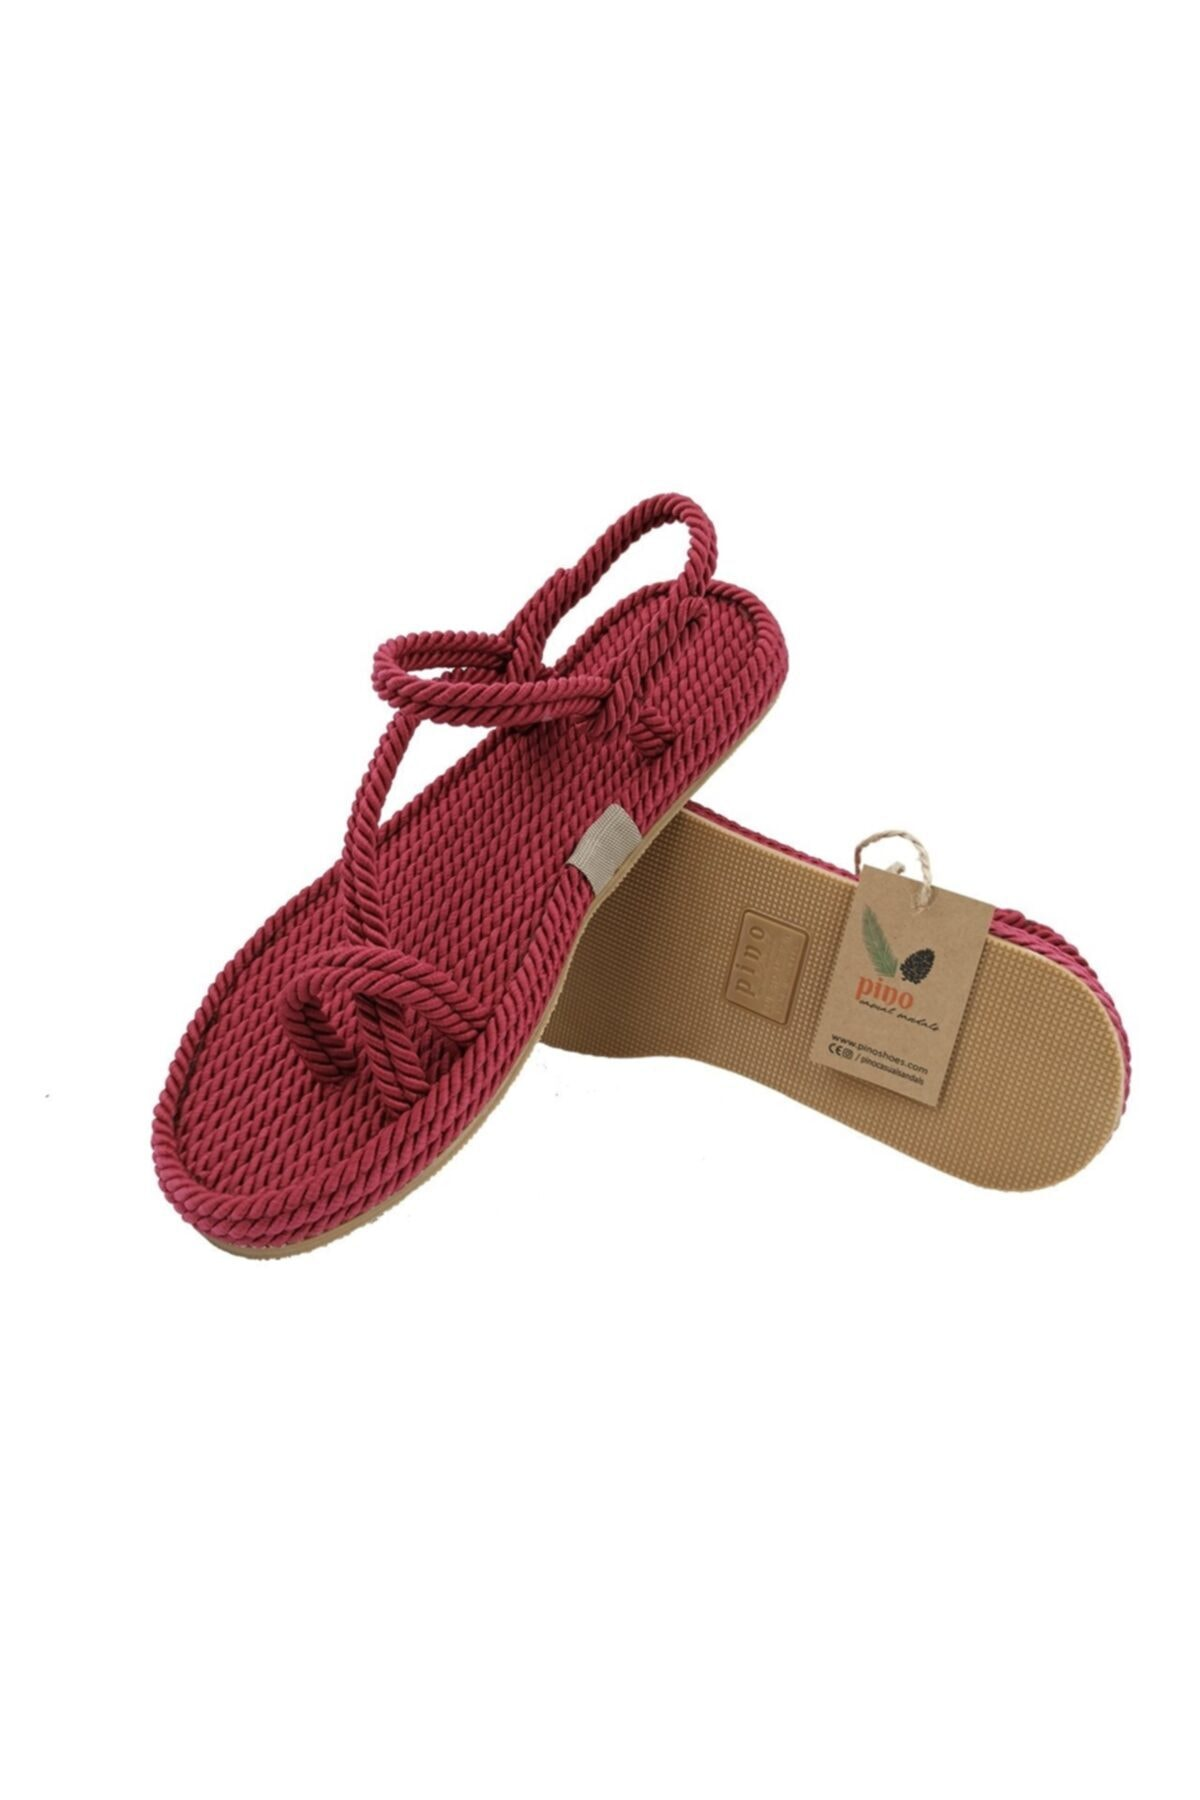 Miteka Casual Shoes Hera Rope Rope Sandals new fashion men women universal summer colorful product sea sun beach Flat Sandals